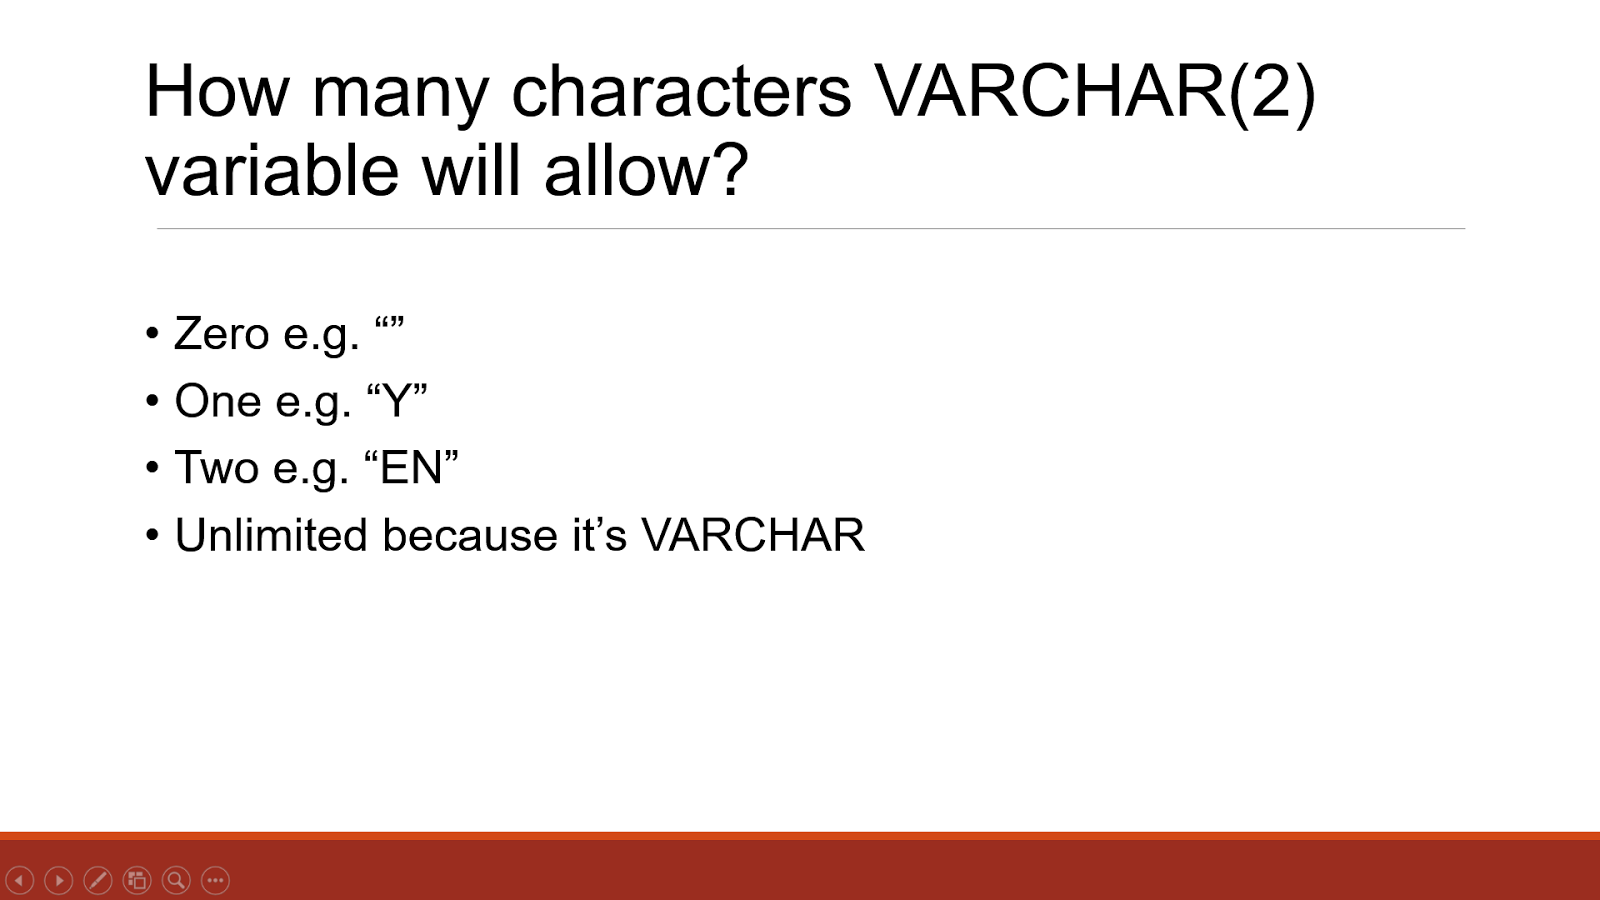 How many characters is allowed on VARCHAR(n) columns in SQL Server